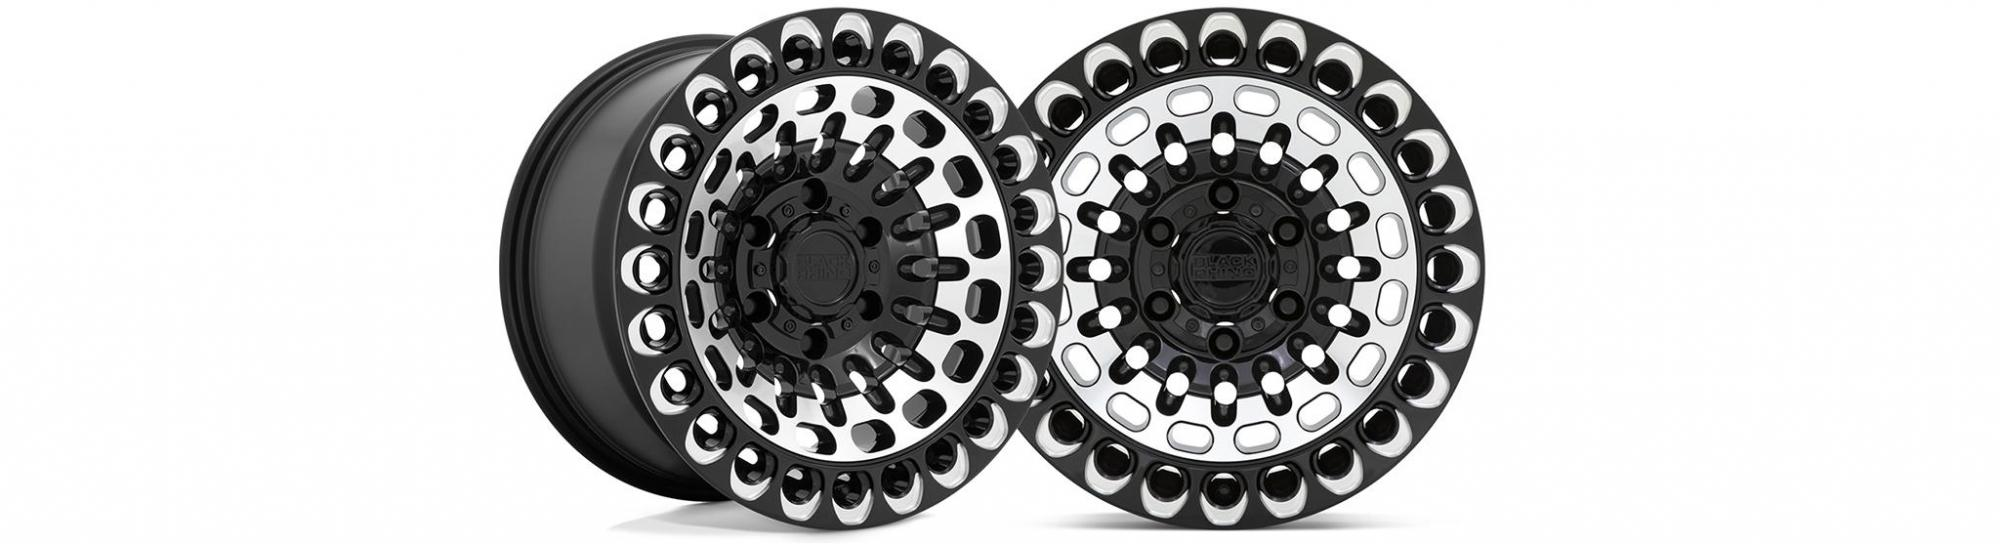 The All New Labyrinth From Black Rhino Wheels